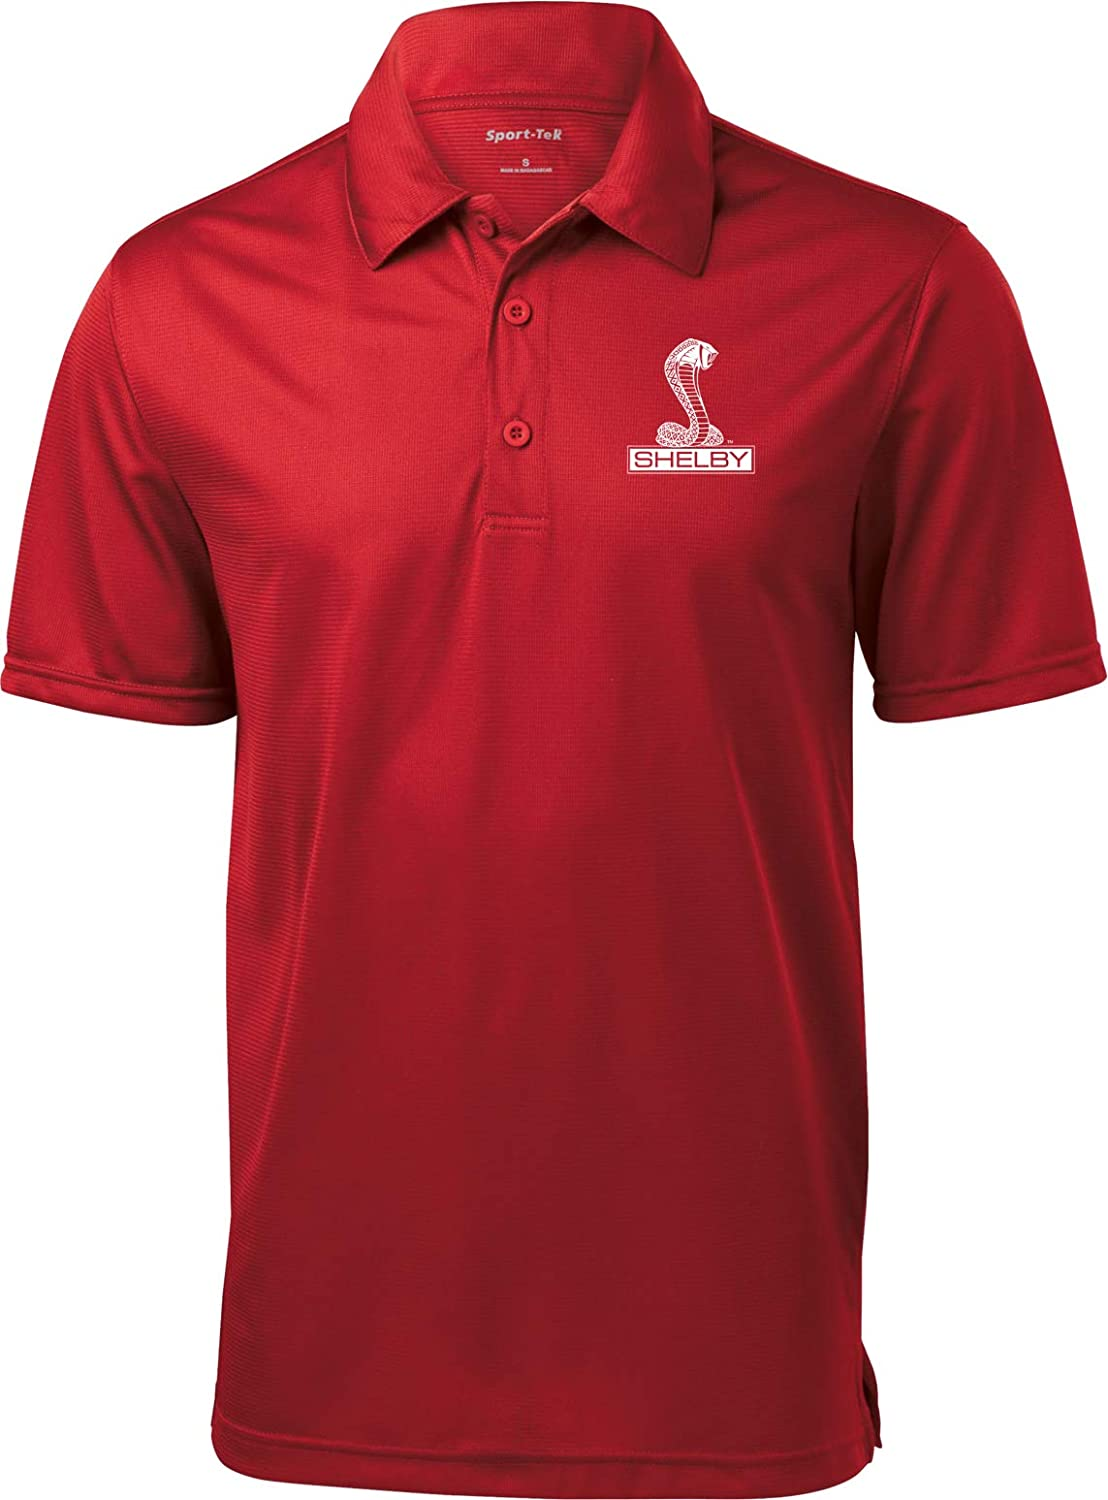 Ford Shelby Cobra Pocket Print Textured Polo, Red 2XL